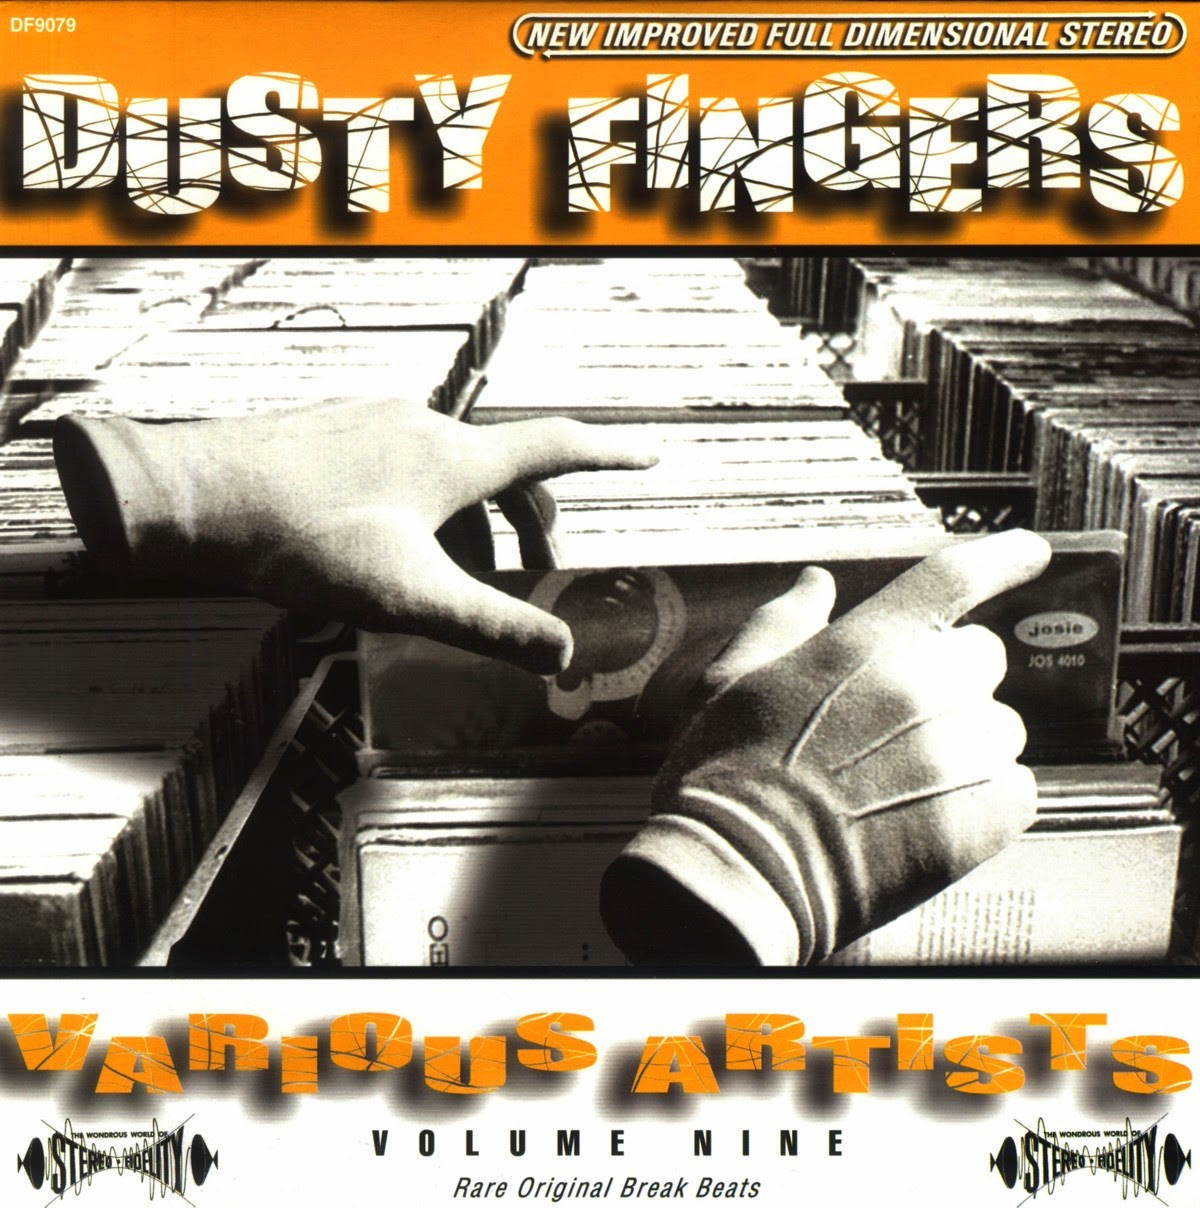 dusty fingers vol 9